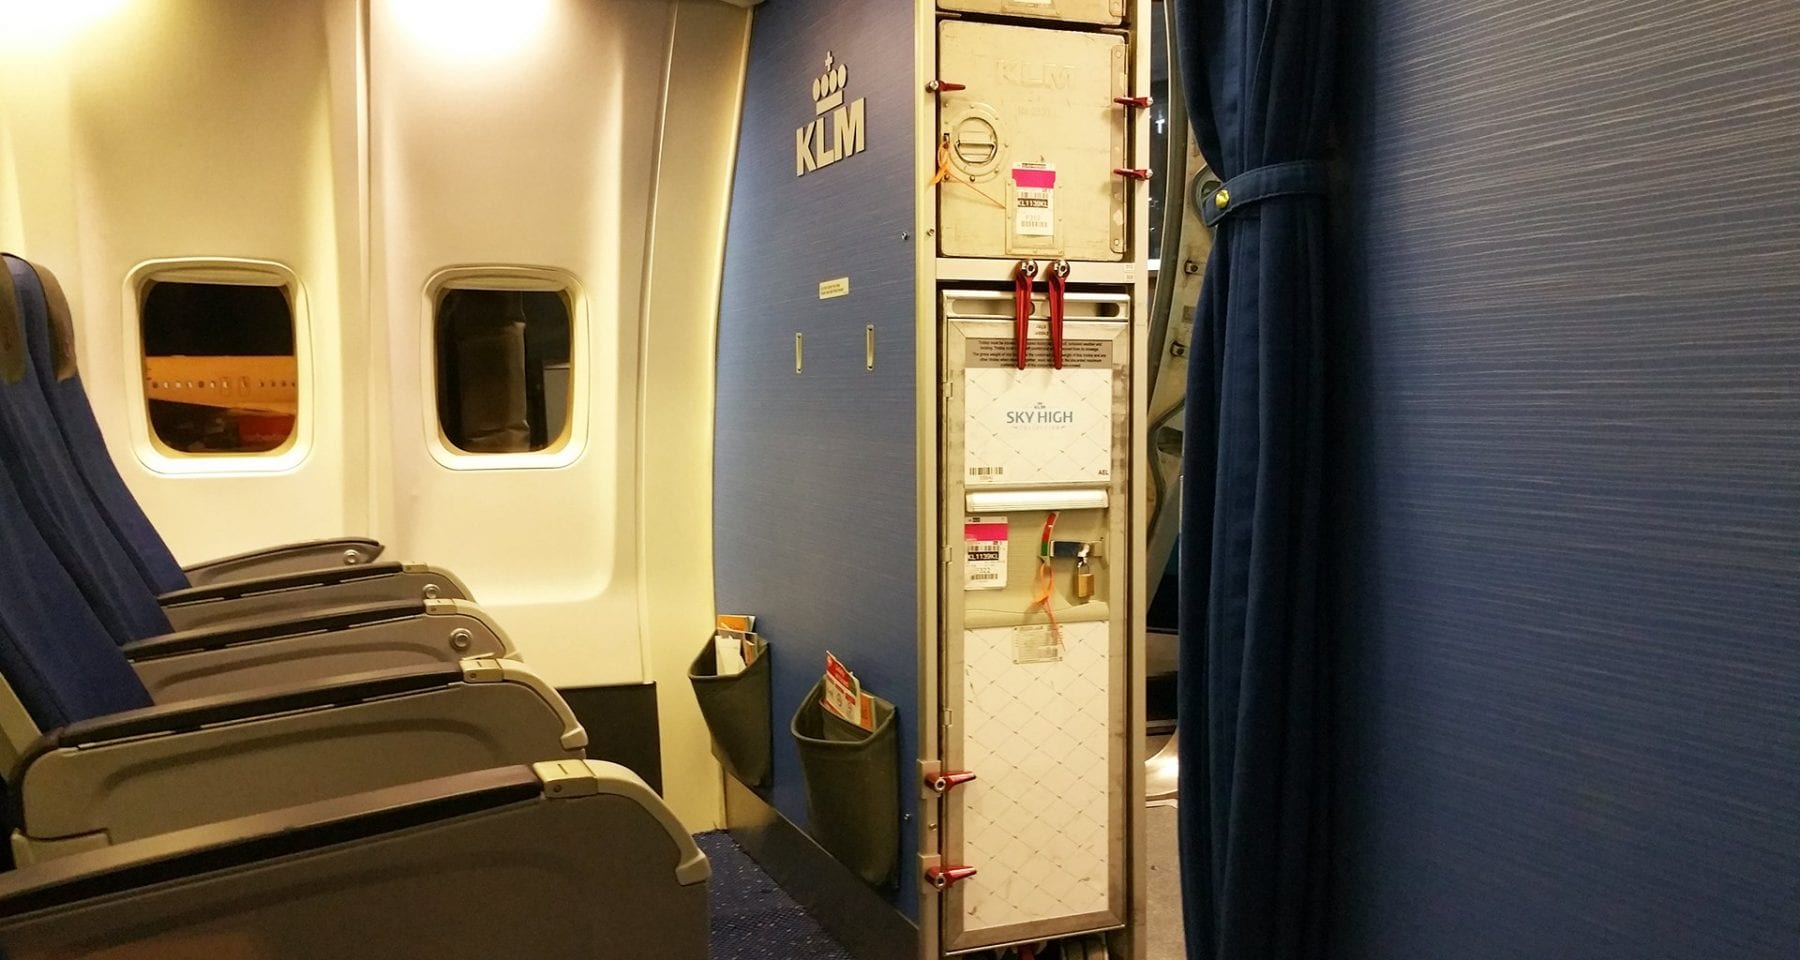 KLM Boeing 737 business class interior